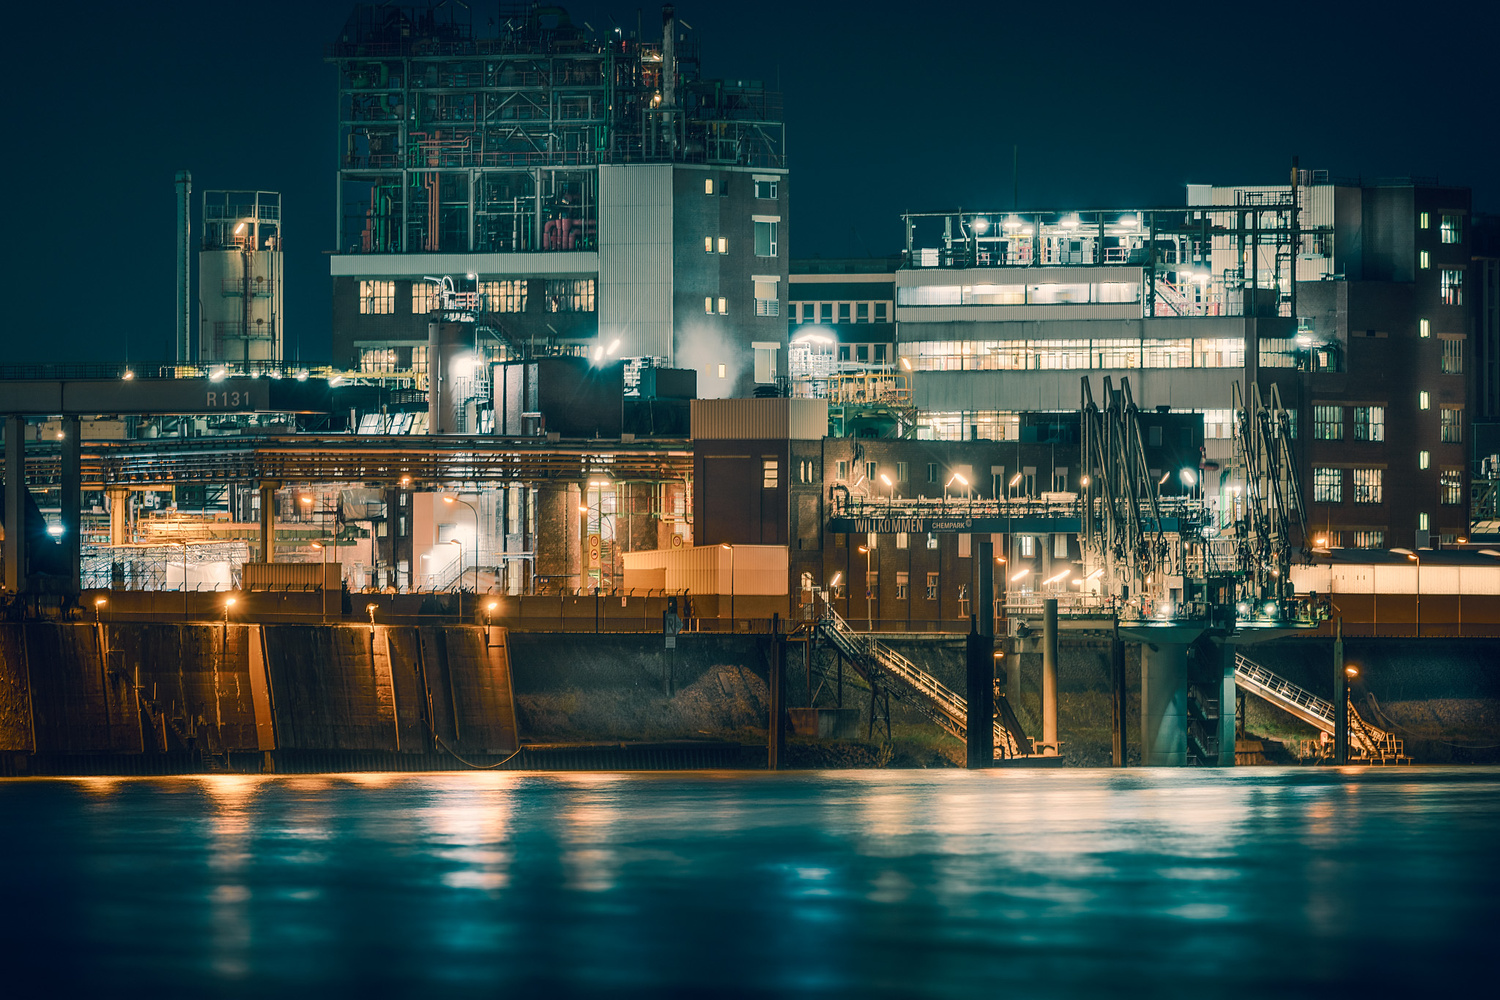 Industrial Night by Axel Jusseit